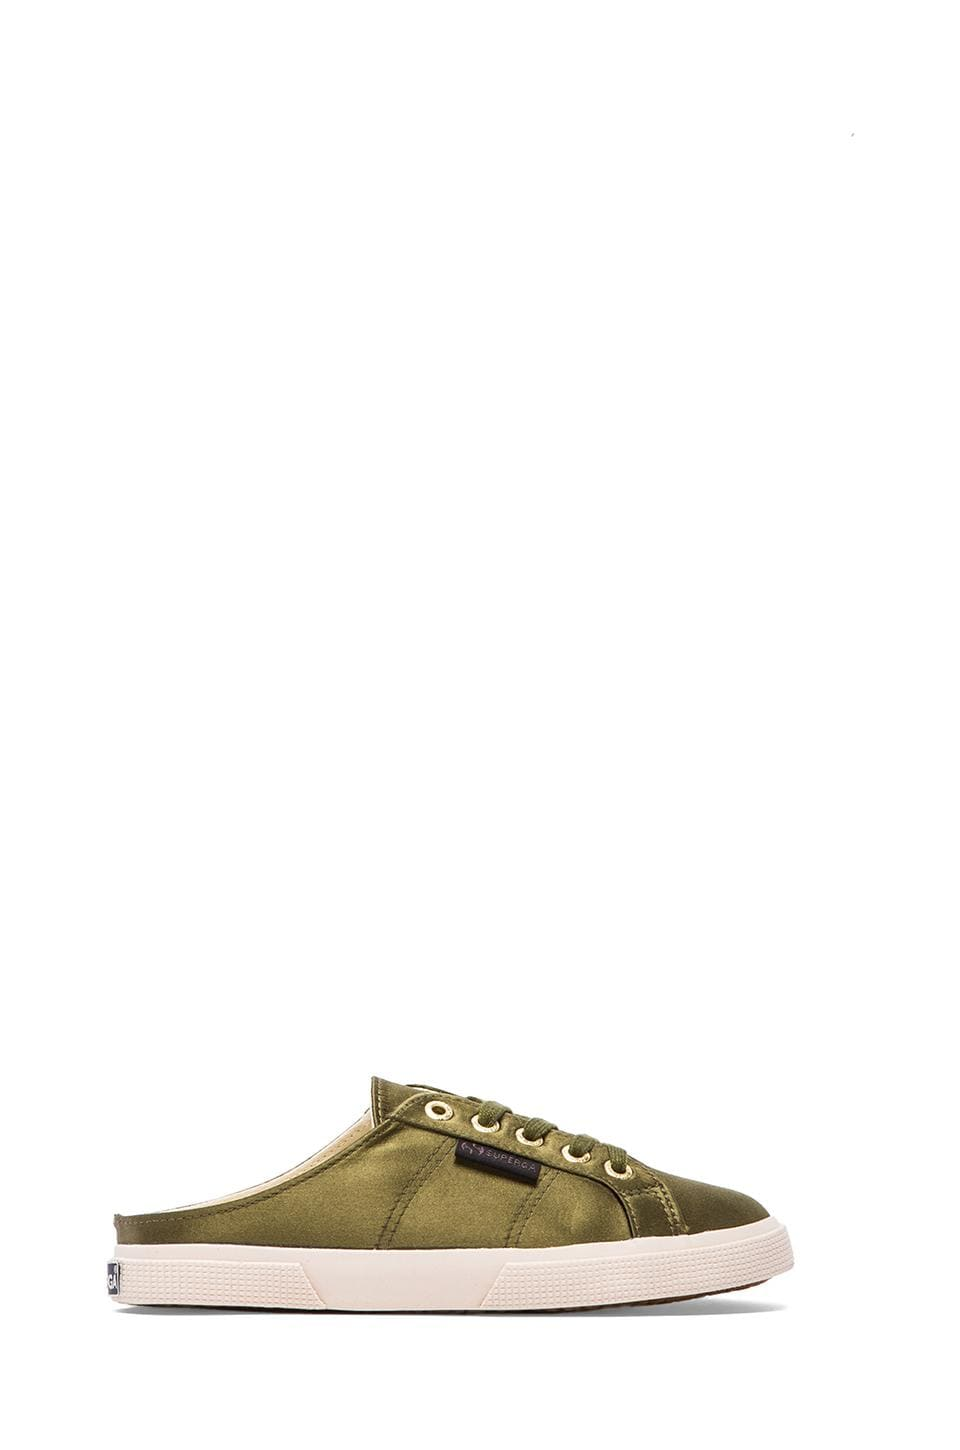 Superga Satin Sneaker in Olive Green